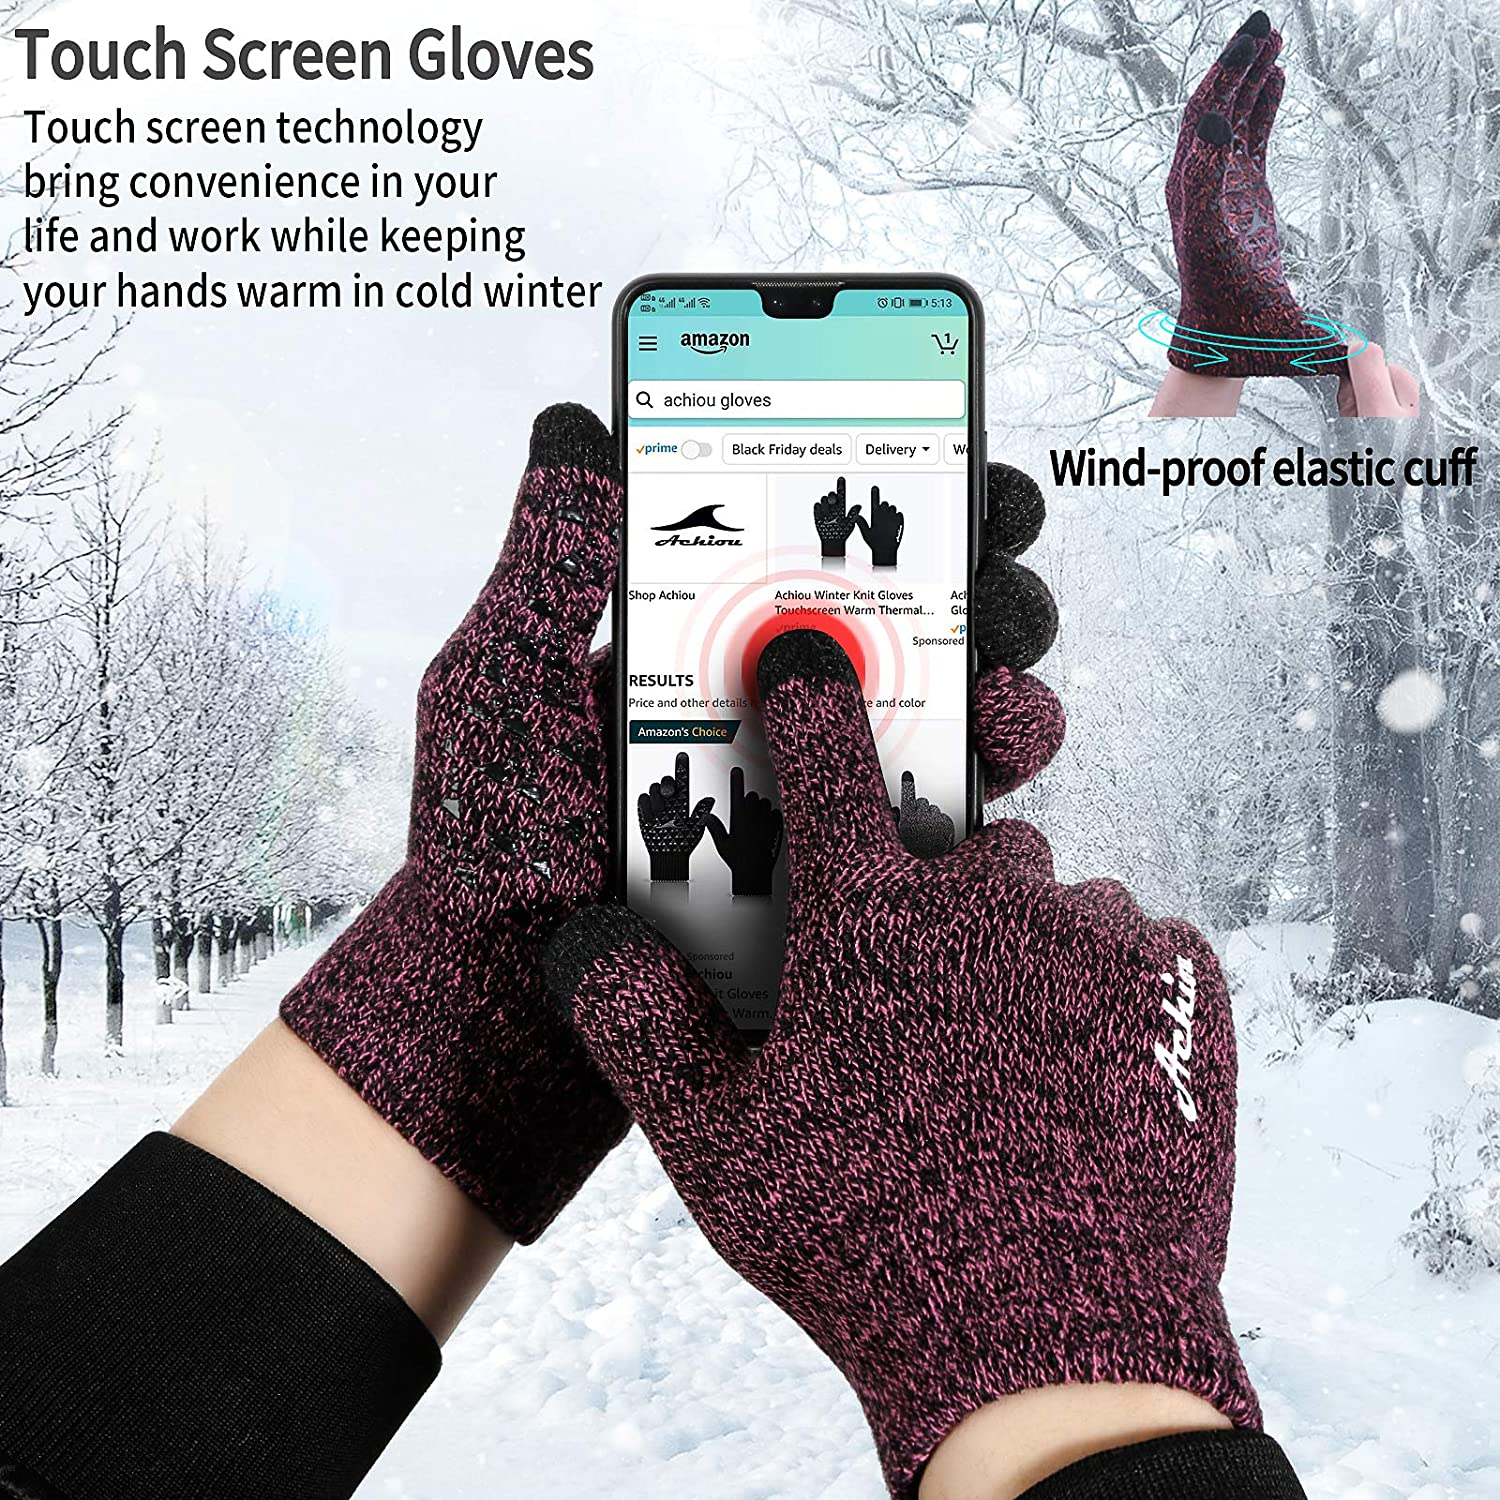 Gloves make the warmest gift for your loved one that she is going to cherish a lot. These gloves feature thermal lining that makes them very warm and comfortable. You can also do your everyday task while wearing them.